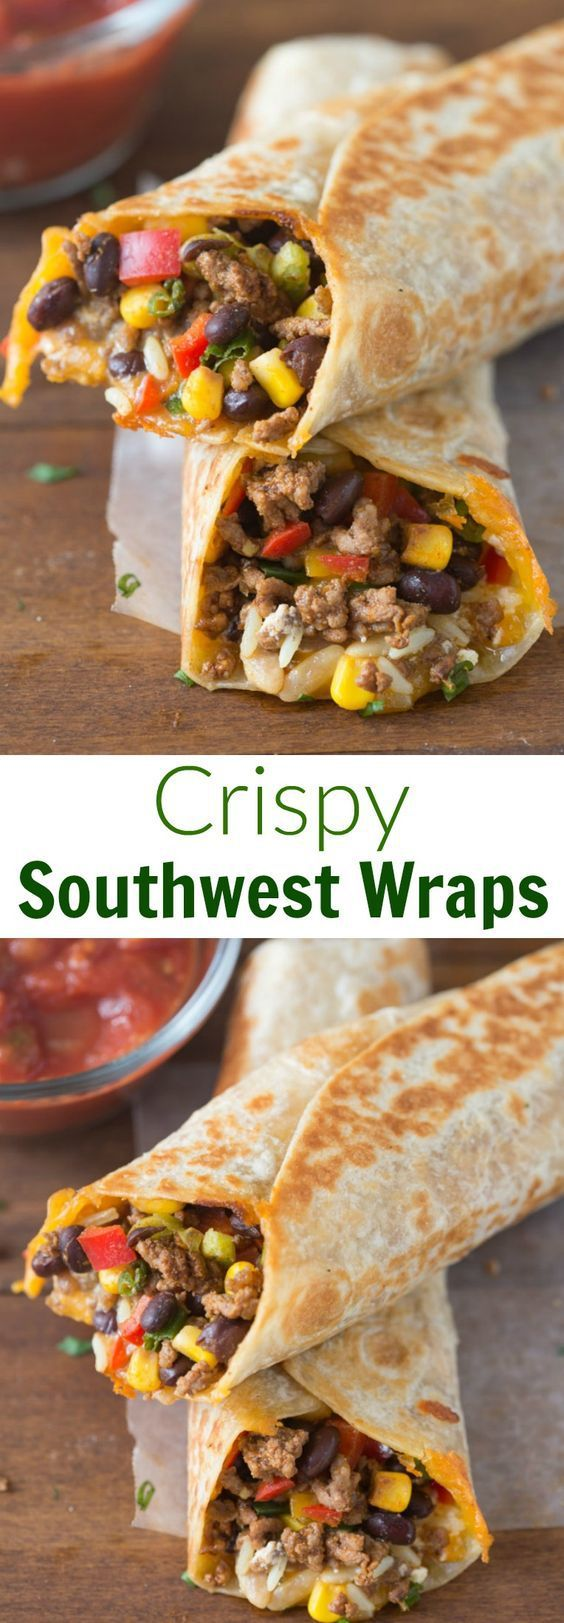 "Crispy Southwest Wraps Recipe via Tastes Better From Scratch - These ""are one of our go-to, easy meals. They take less than 30-minutes and my family loves them!"" - The BEST 30 Minute Meals Recipes - Easy, Quick and Delicious Family Friendly Lunch and Dinner Ideas"